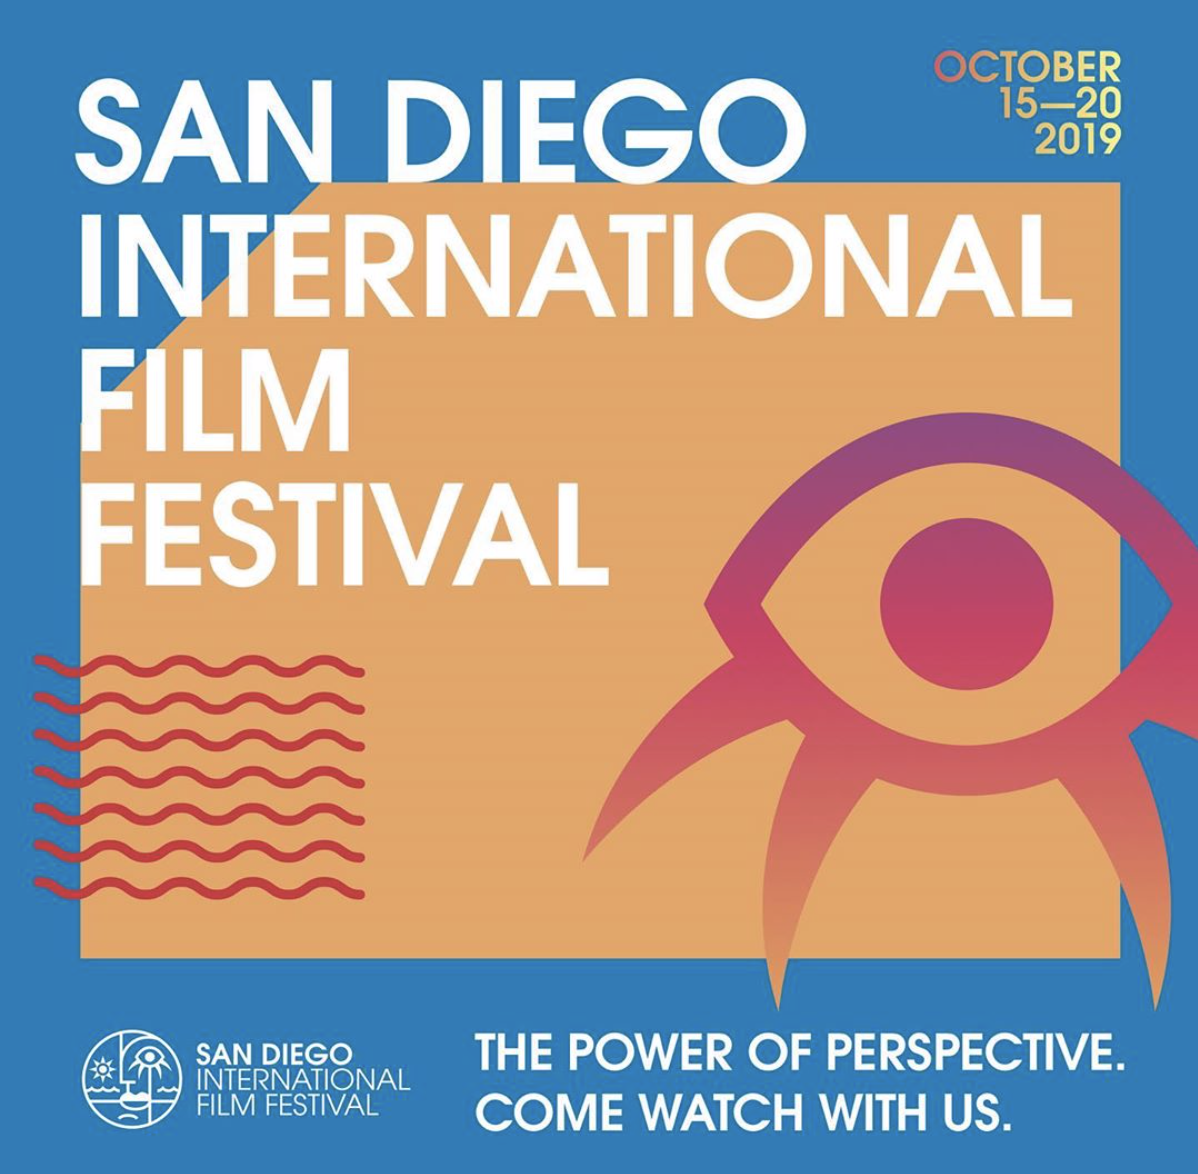 Save on passes & Enter to win tickets to the San Diego International Film Festival - October 15-20!